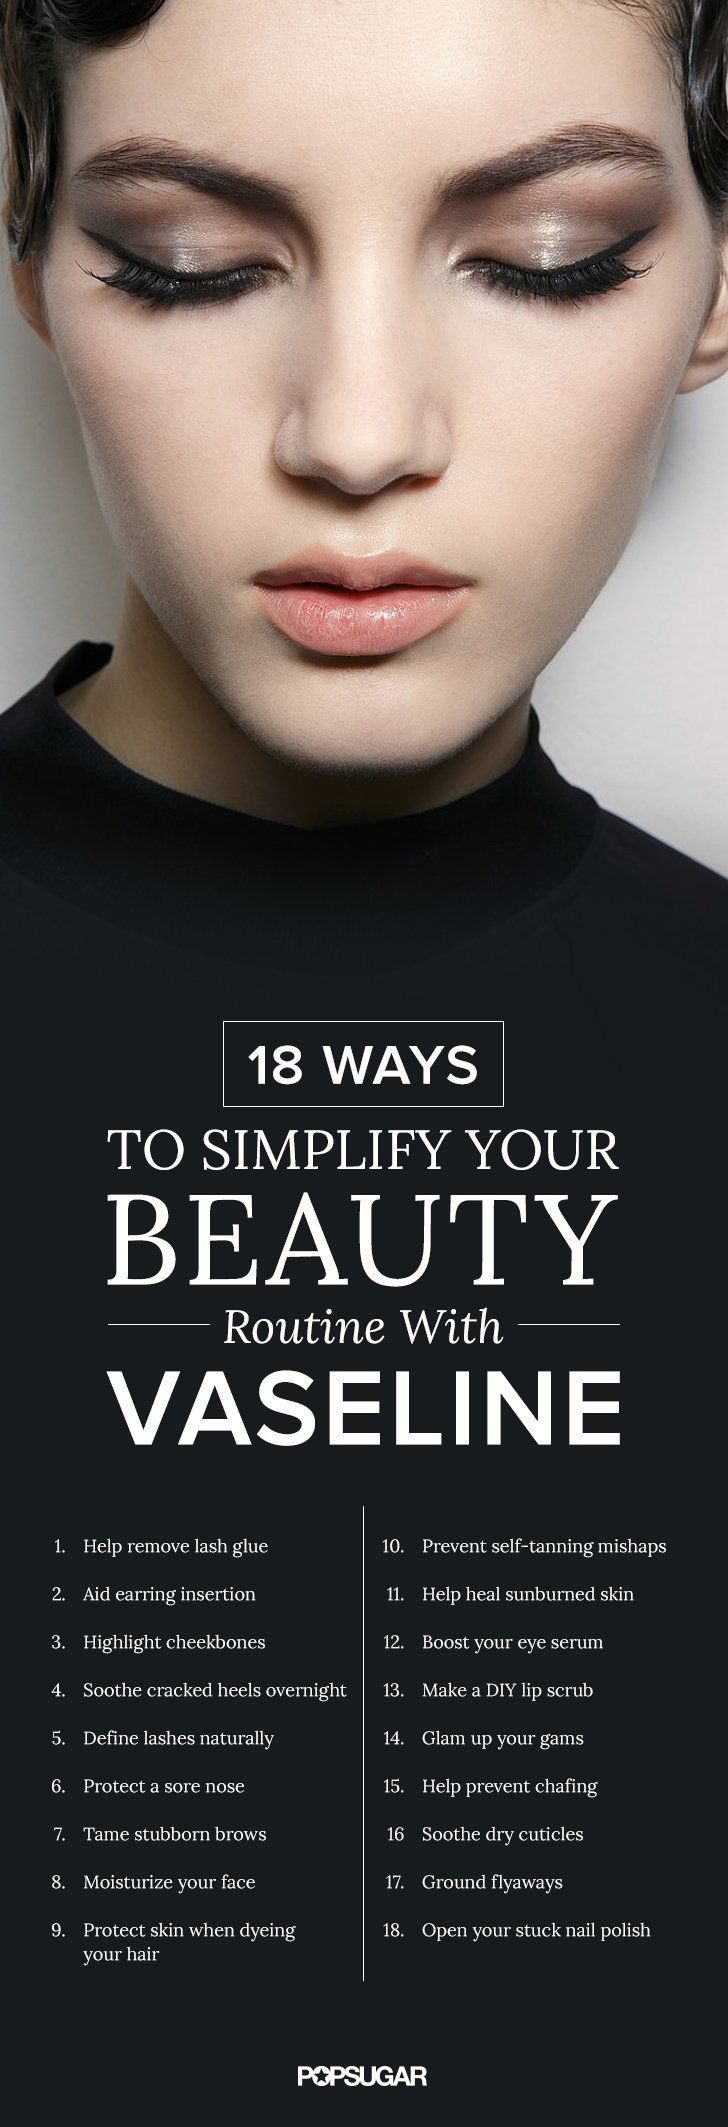 18 Ways to Simplify Your Beauty Routine With Vaseline